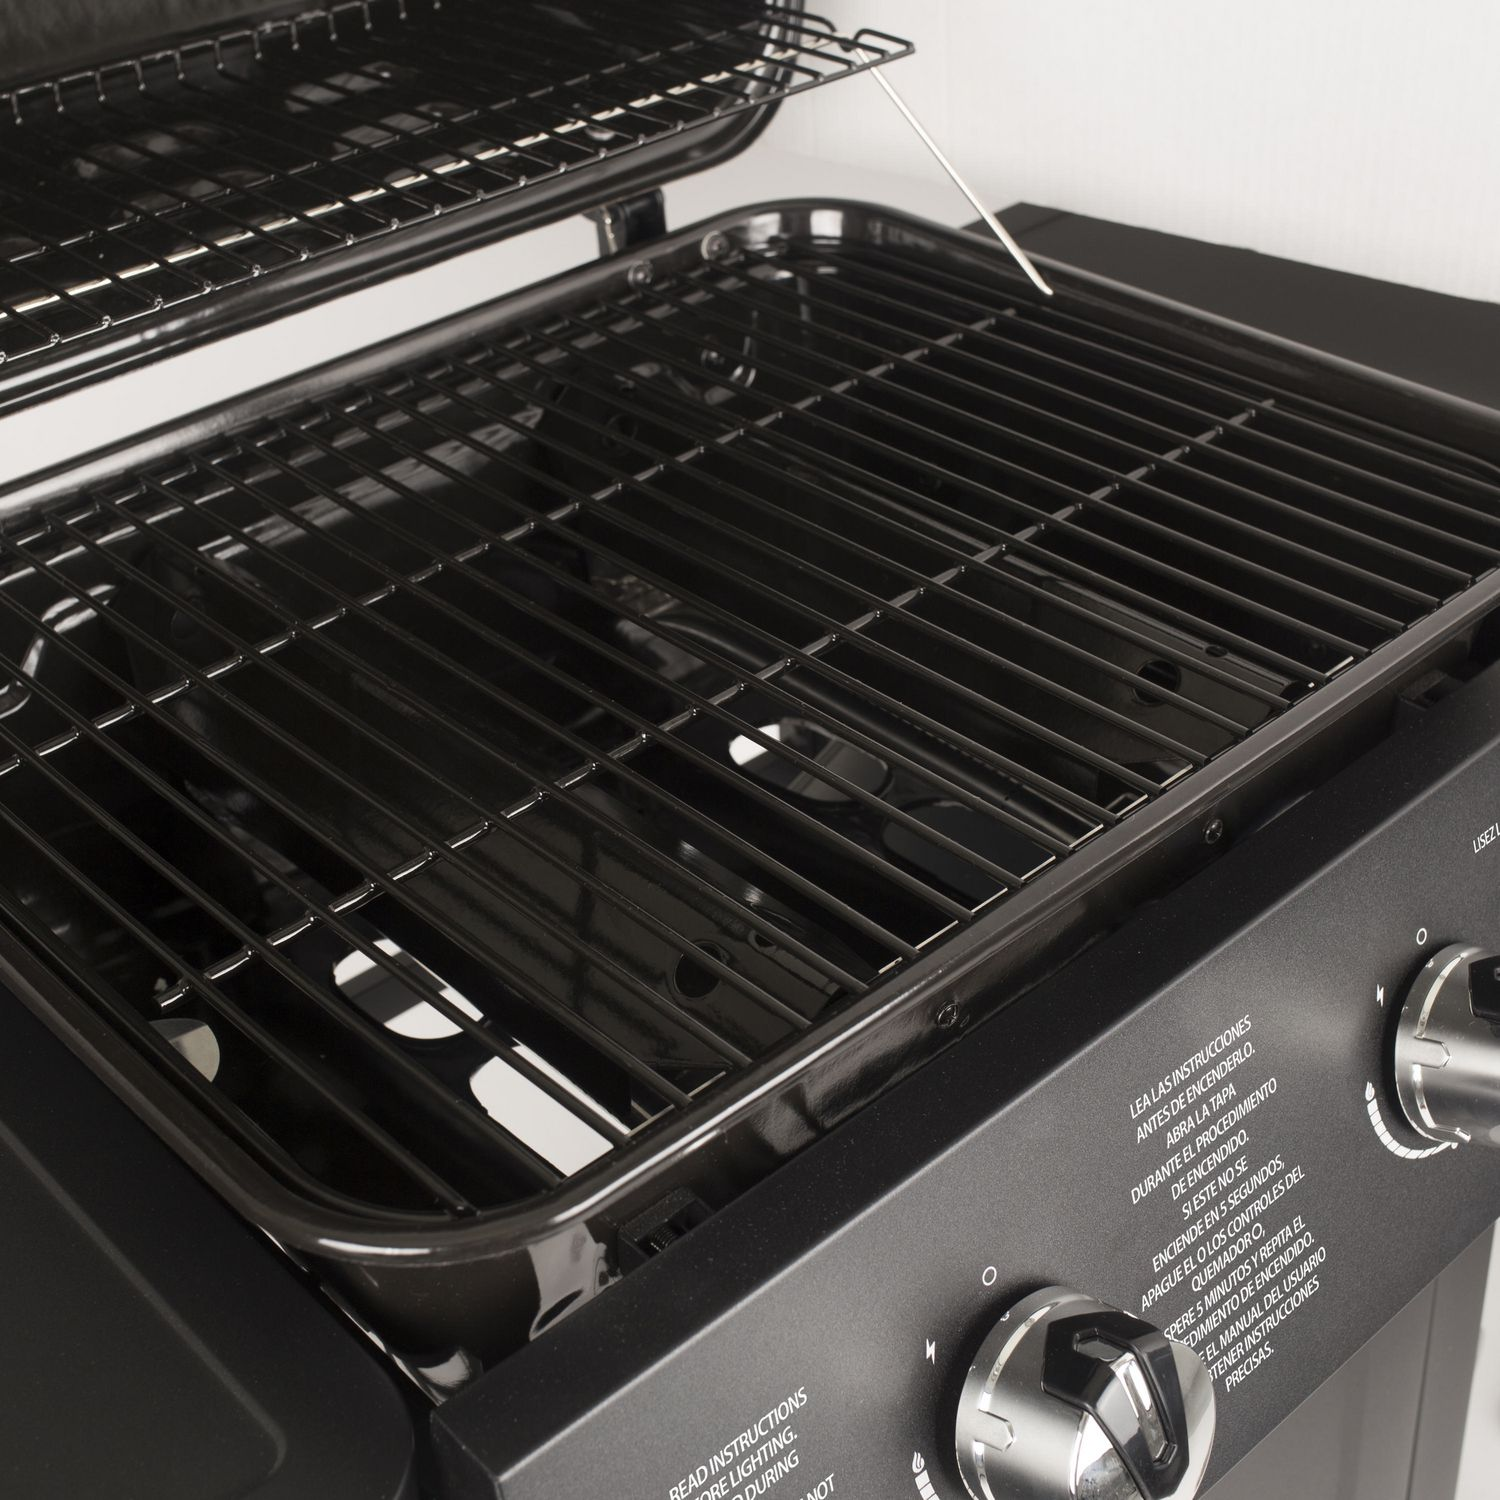 bosch for csw shelf oven image extendable loading pan is itm handle grill adjustable cooker rack